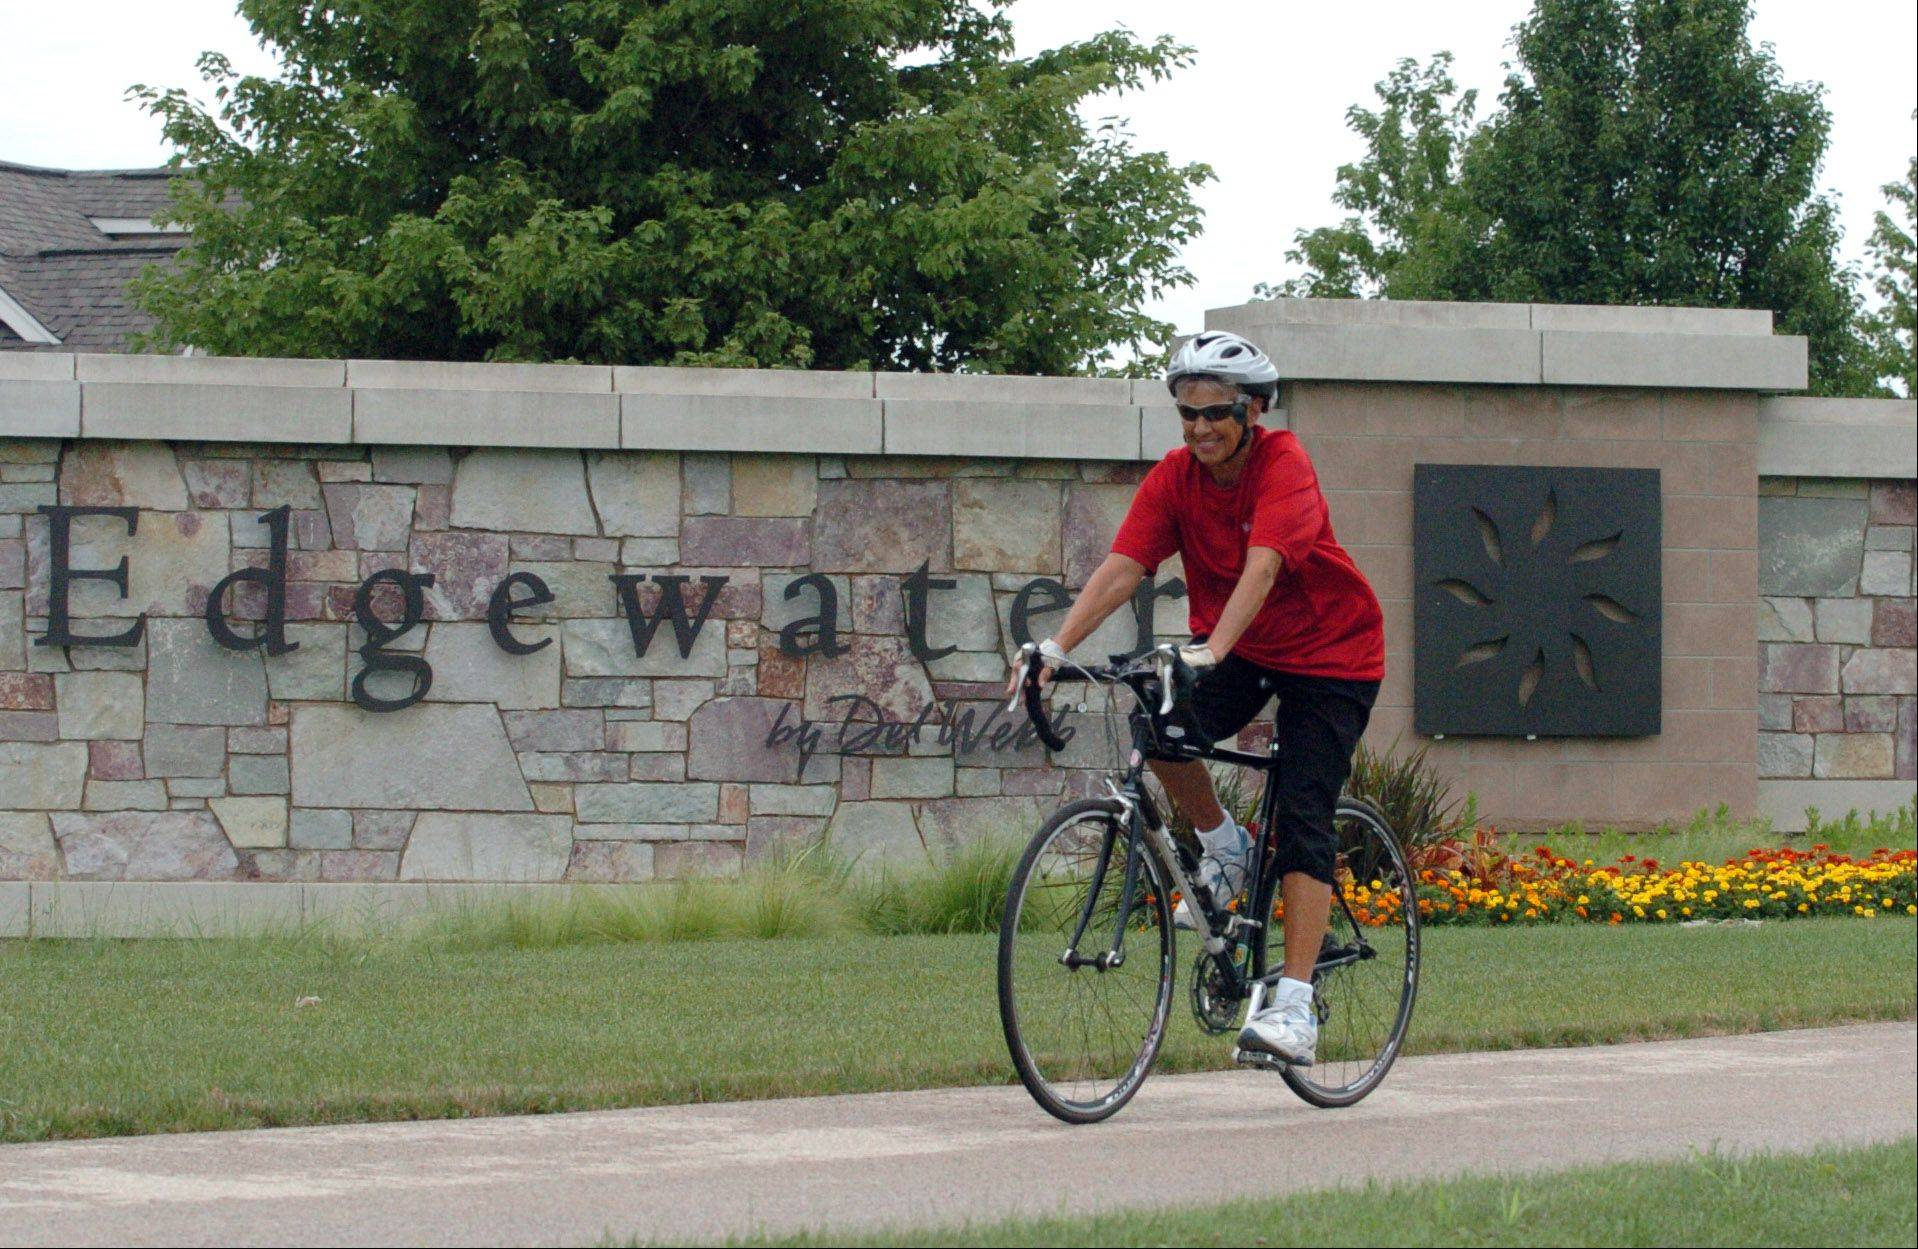 Marina Wray of Elgin takes her usual bike ride on the scenic paths of Del Webb's Edgewater active adult community.